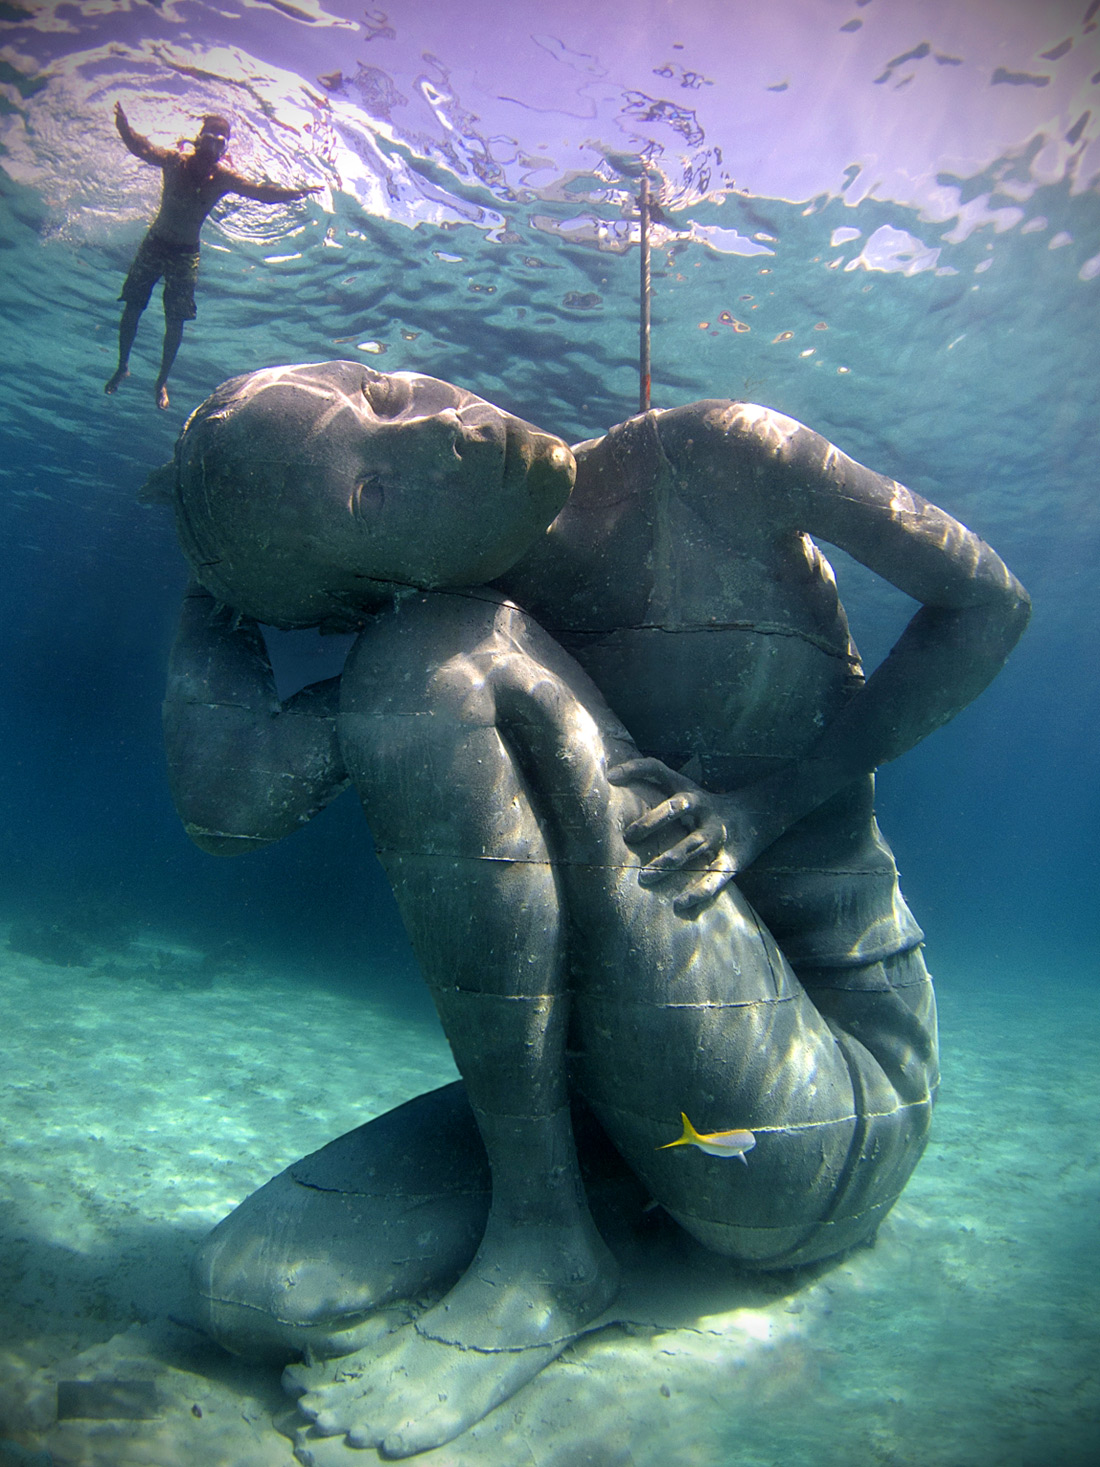 Ocean Atlas A Massive Submerged Girl Carries The Weight